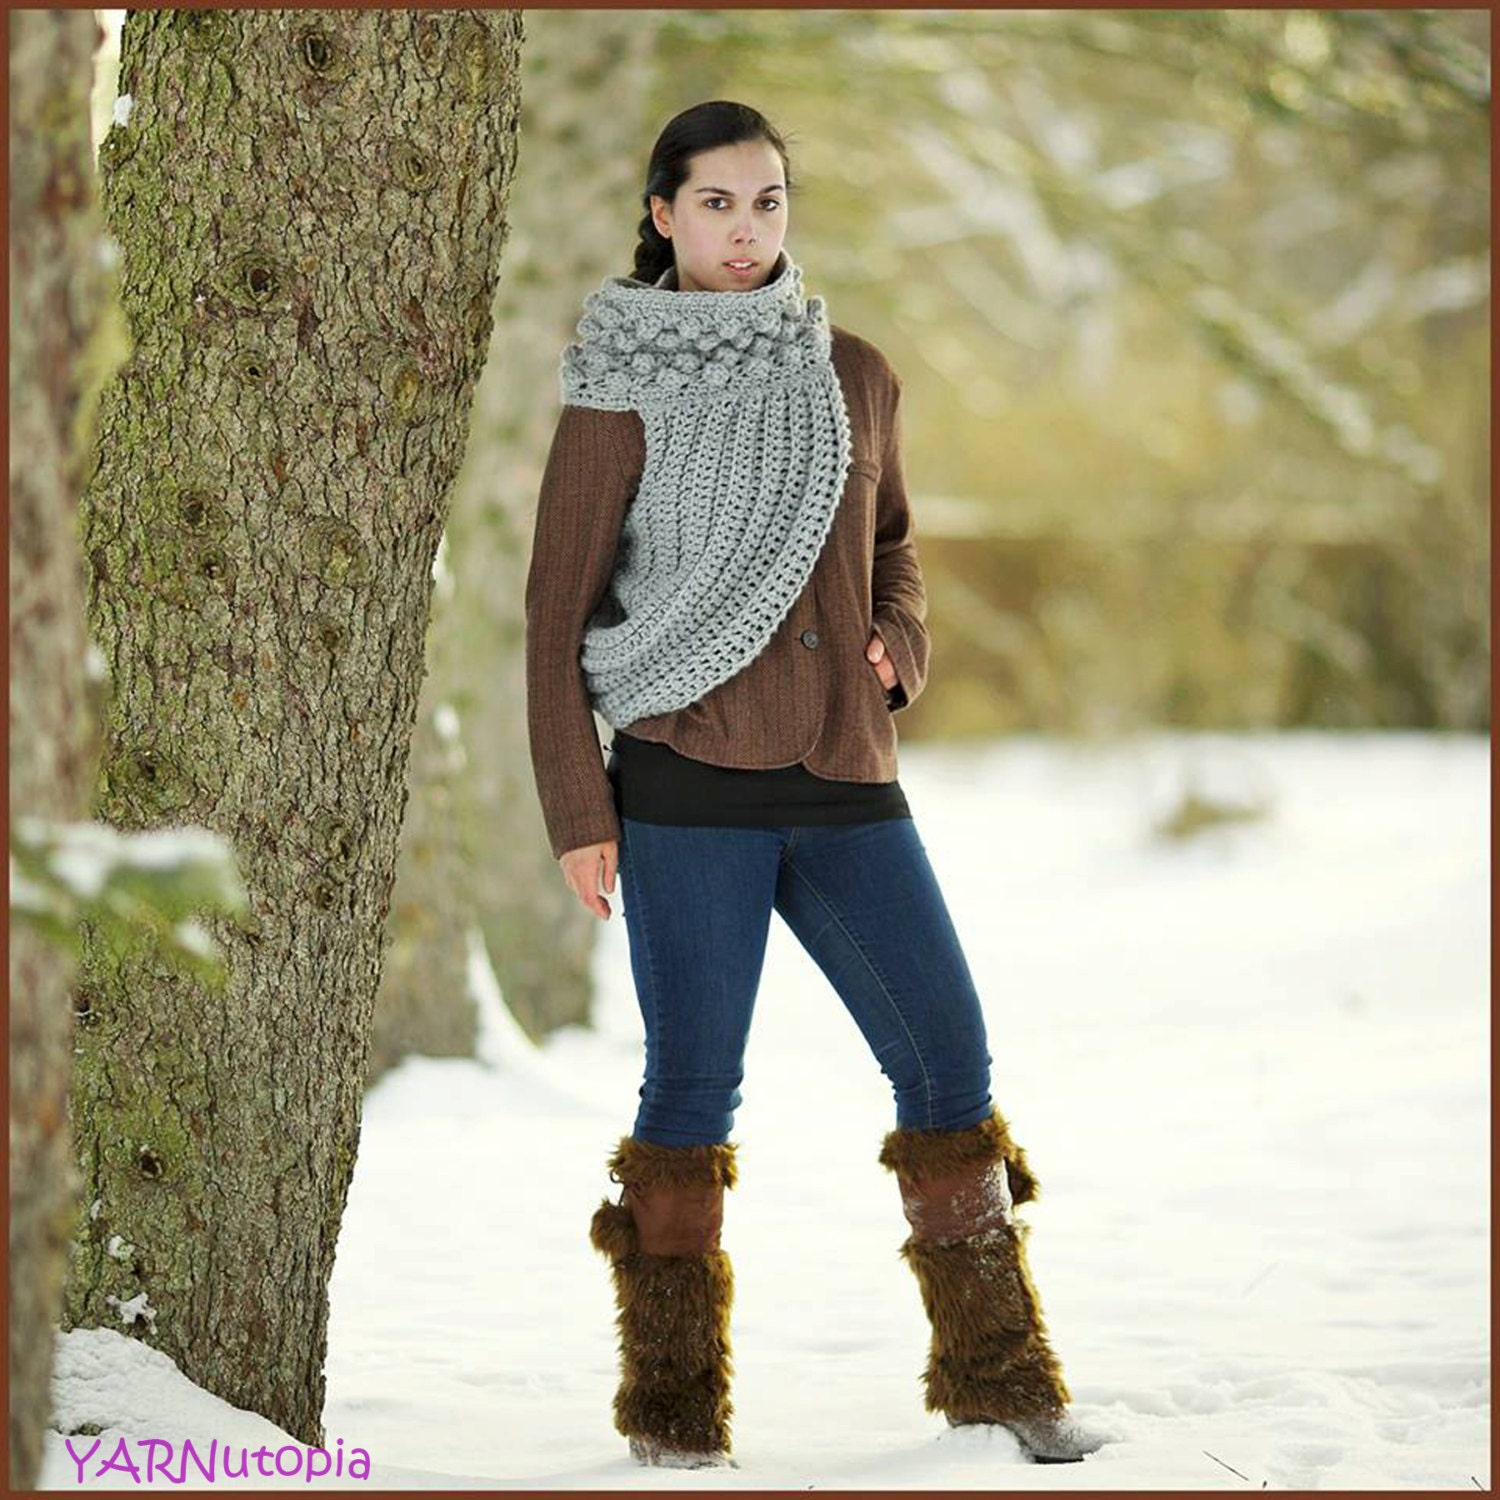 handmade crocheted katniss cowl hunting costume sweater 128270zoom